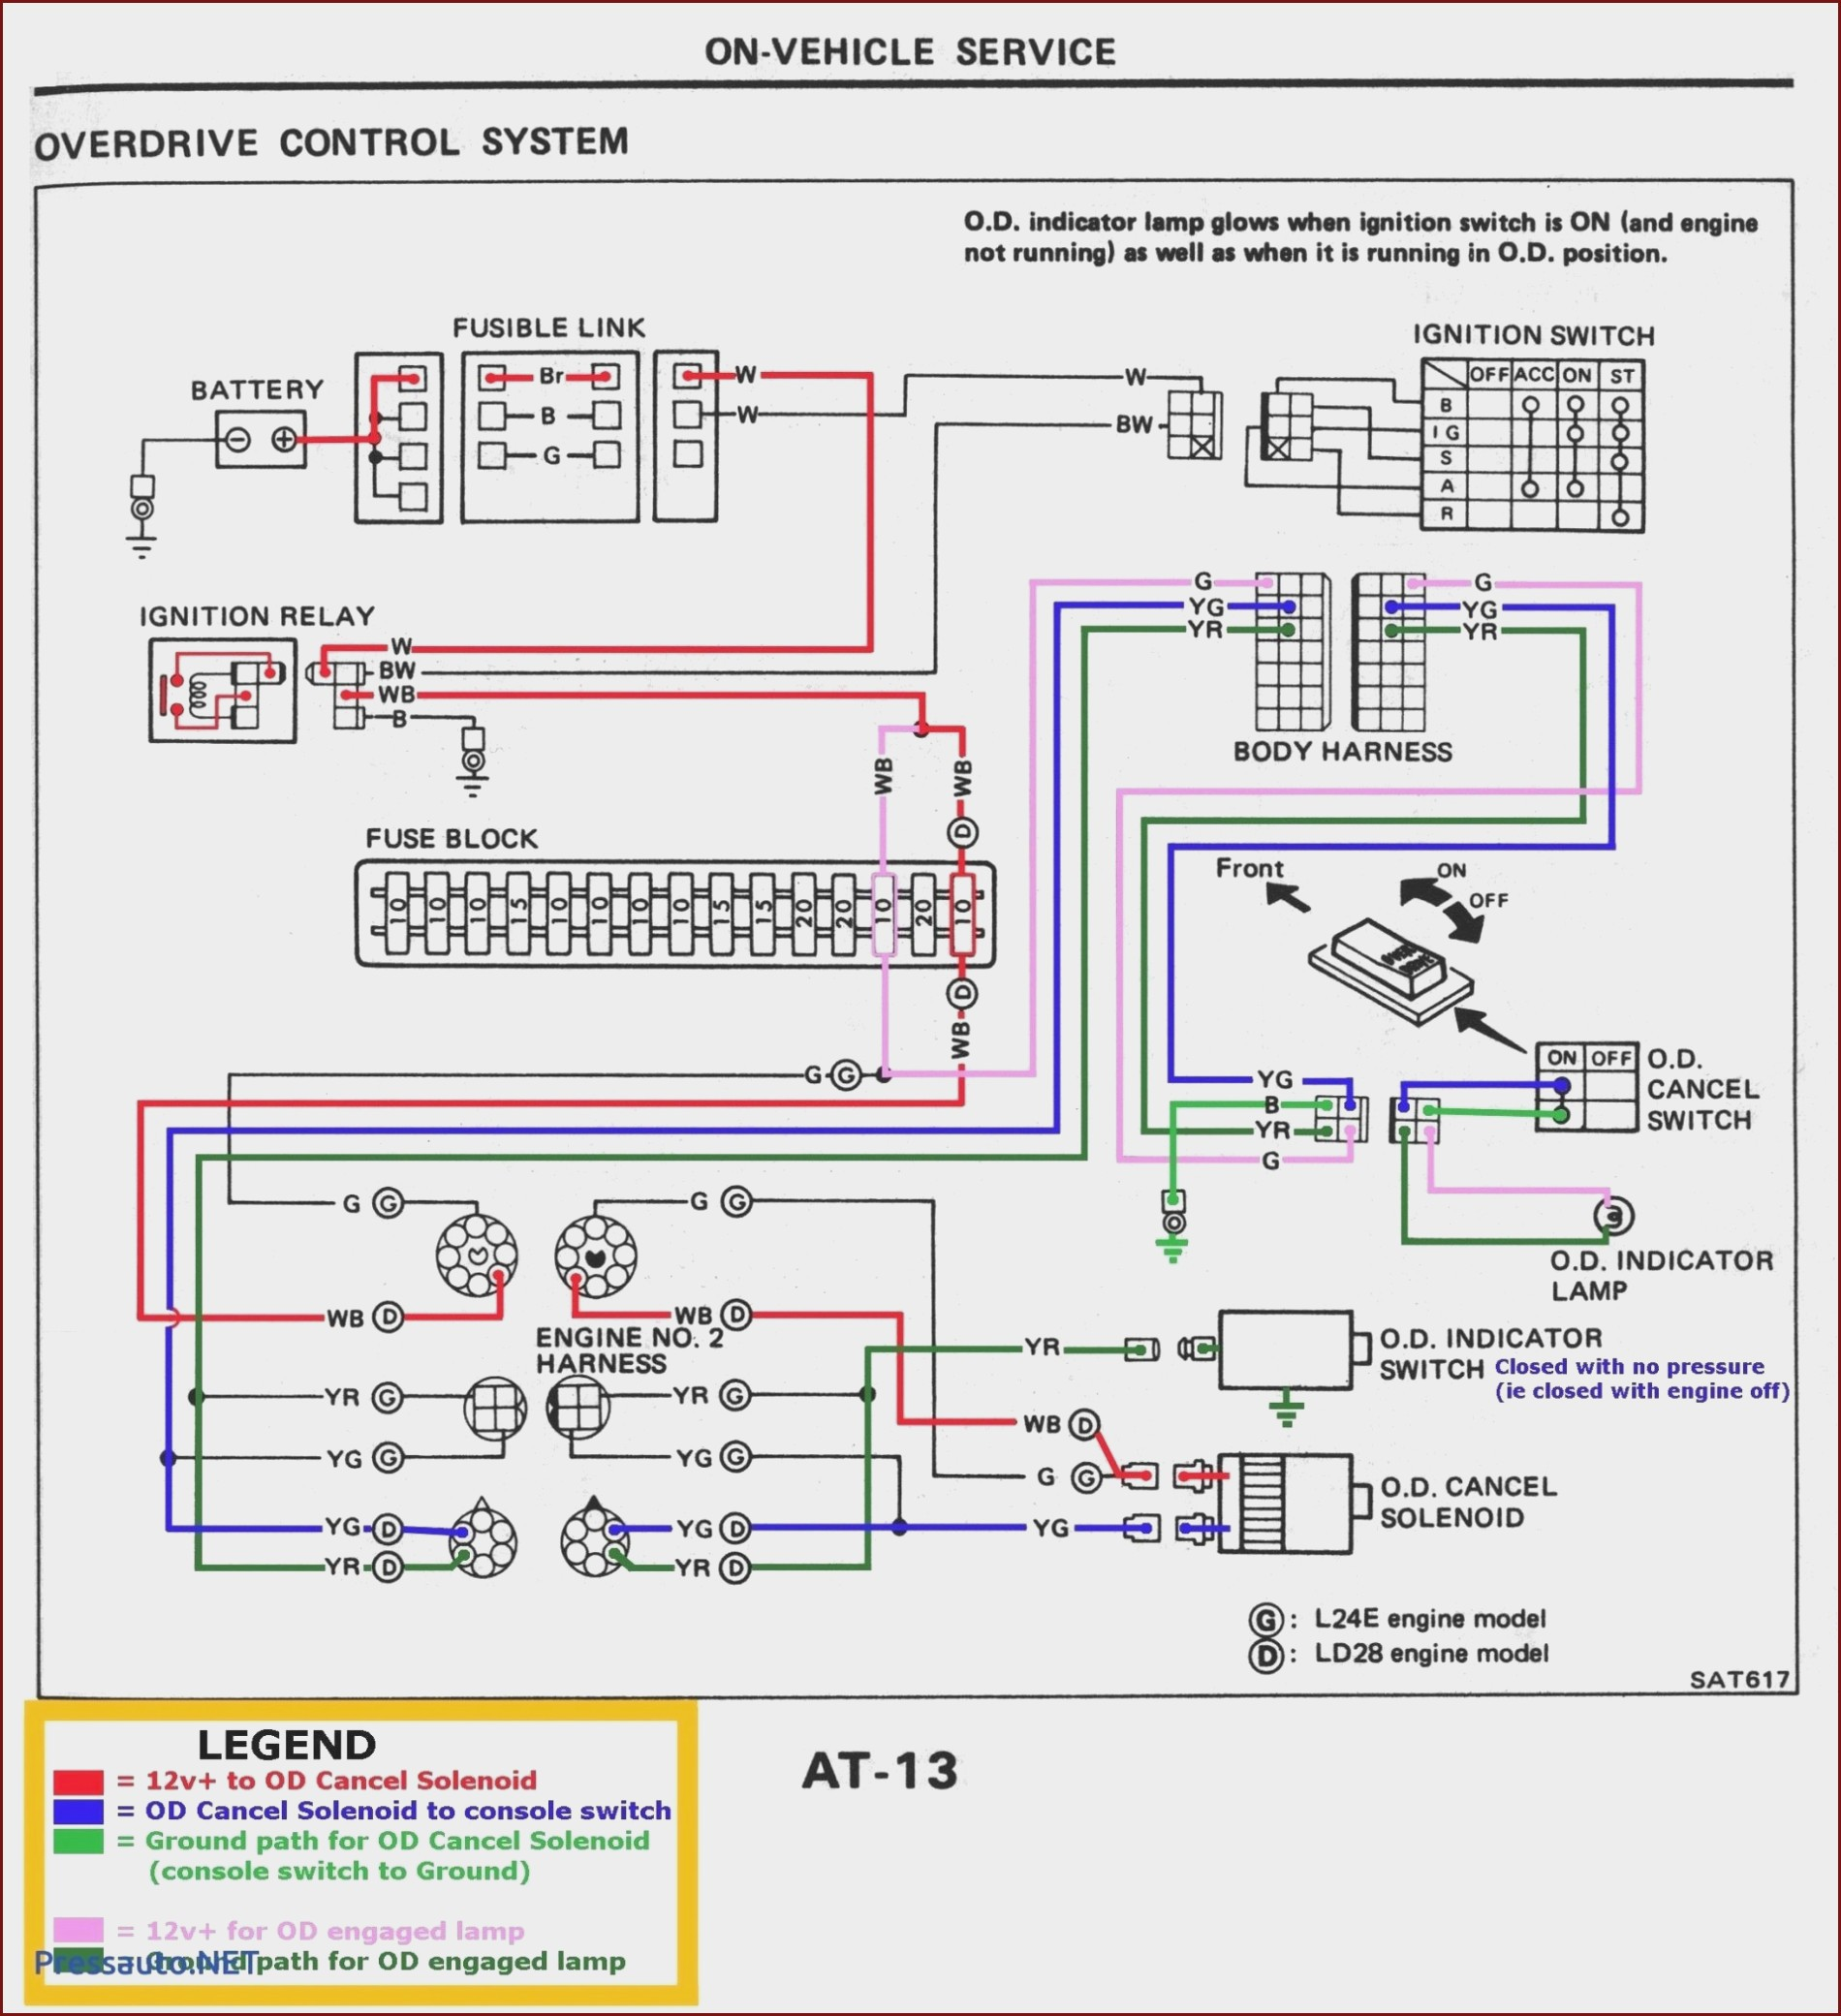 1998 Dodge Neon Engine Diagram Dodge Neon Suspension Diagram at Manuals Library